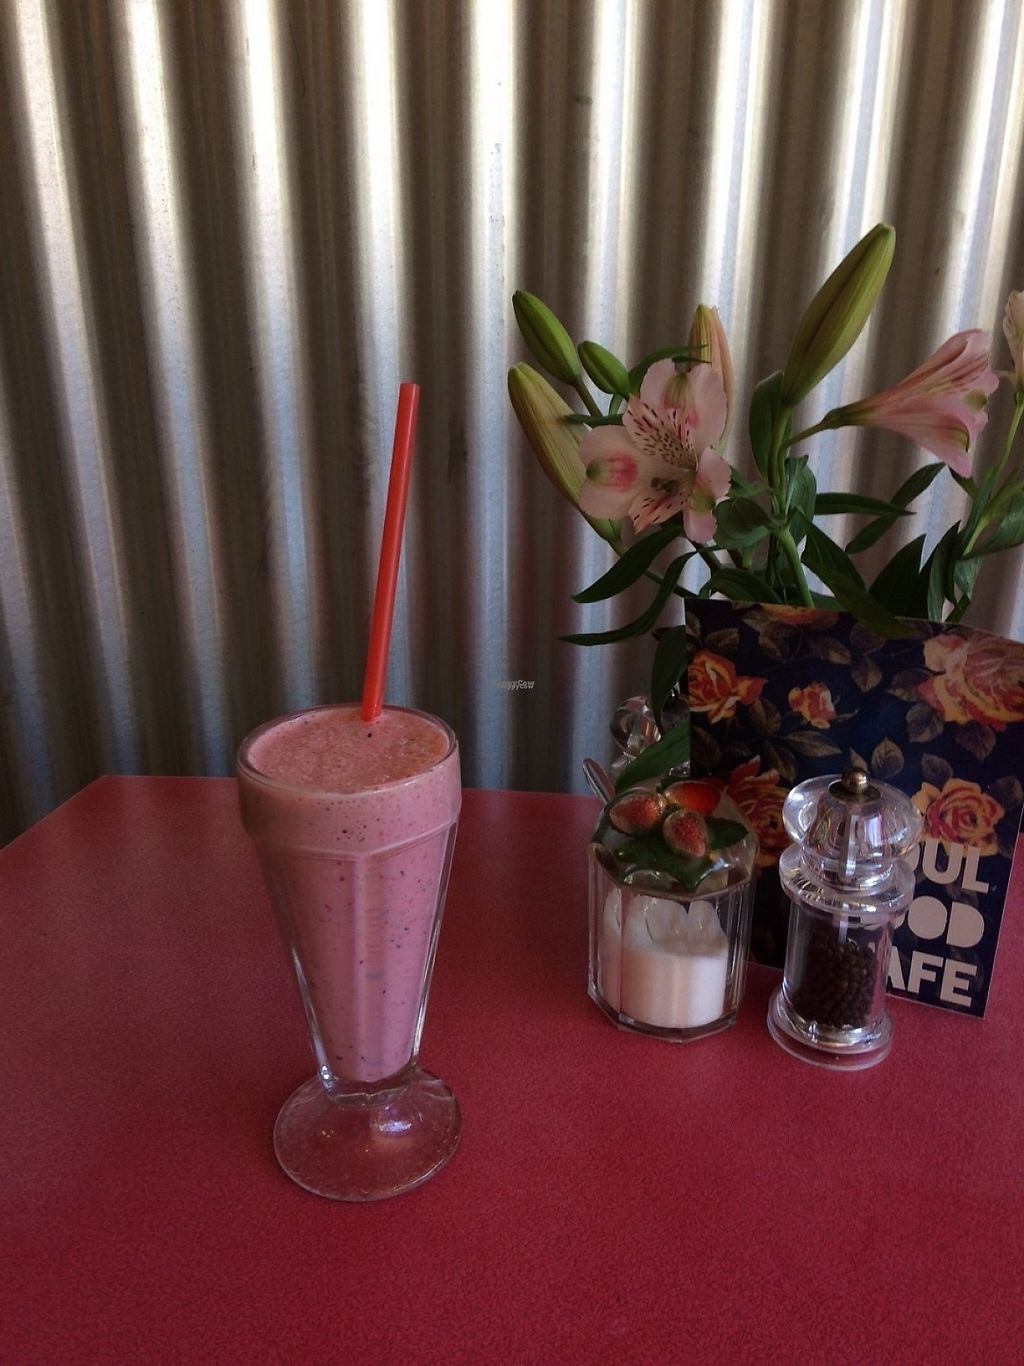 """Photo of Soul Food Cafe  by <a href=""""/members/profile/SandySmith"""">SandySmith</a> <br/>Vegan milkshakes are delicious  <br/> April 24, 2017  - <a href='/contact/abuse/image/90951/251890'>Report</a>"""